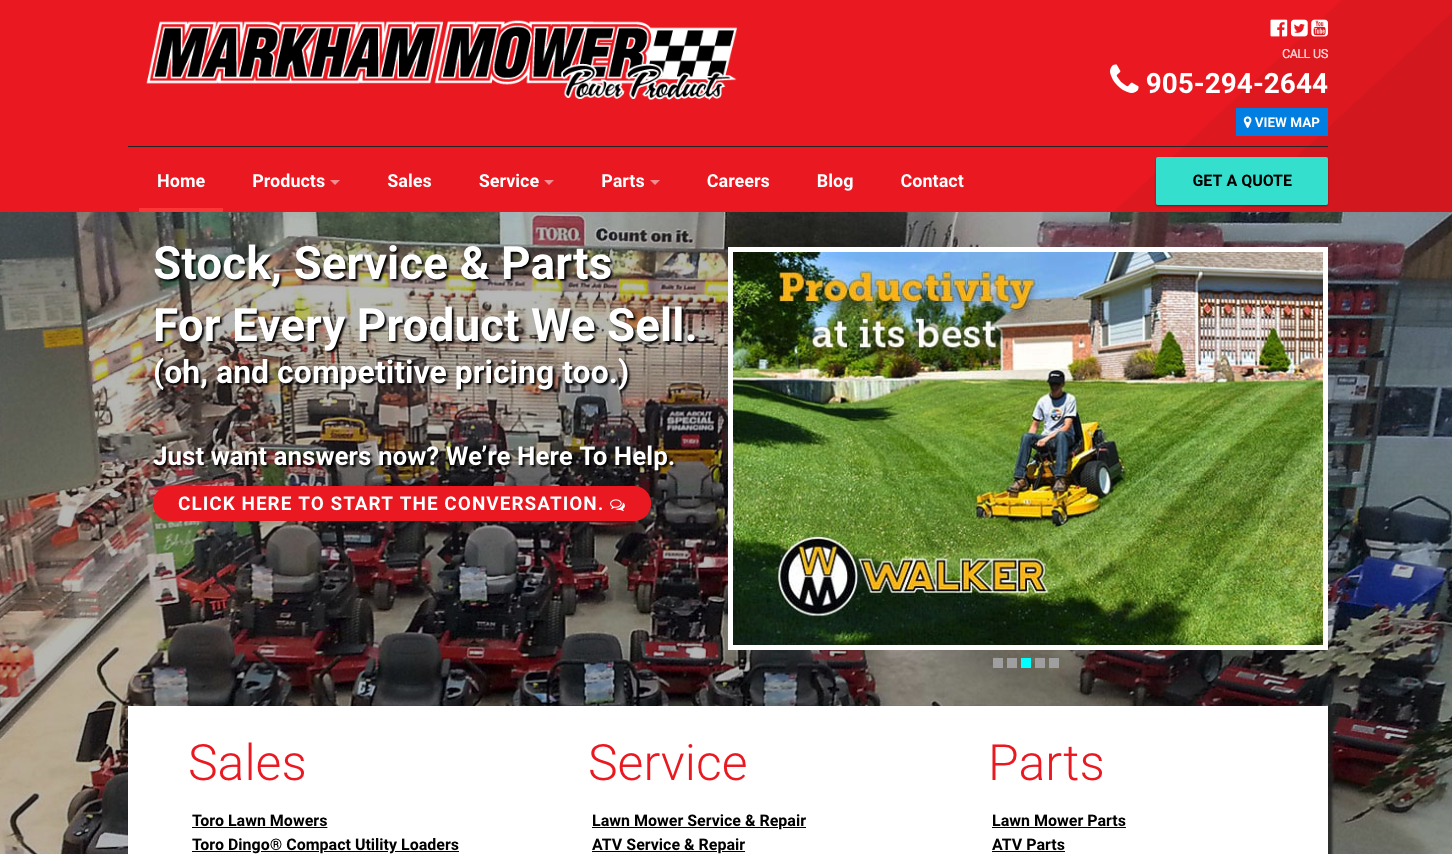 Markham-Mower-Power-Products